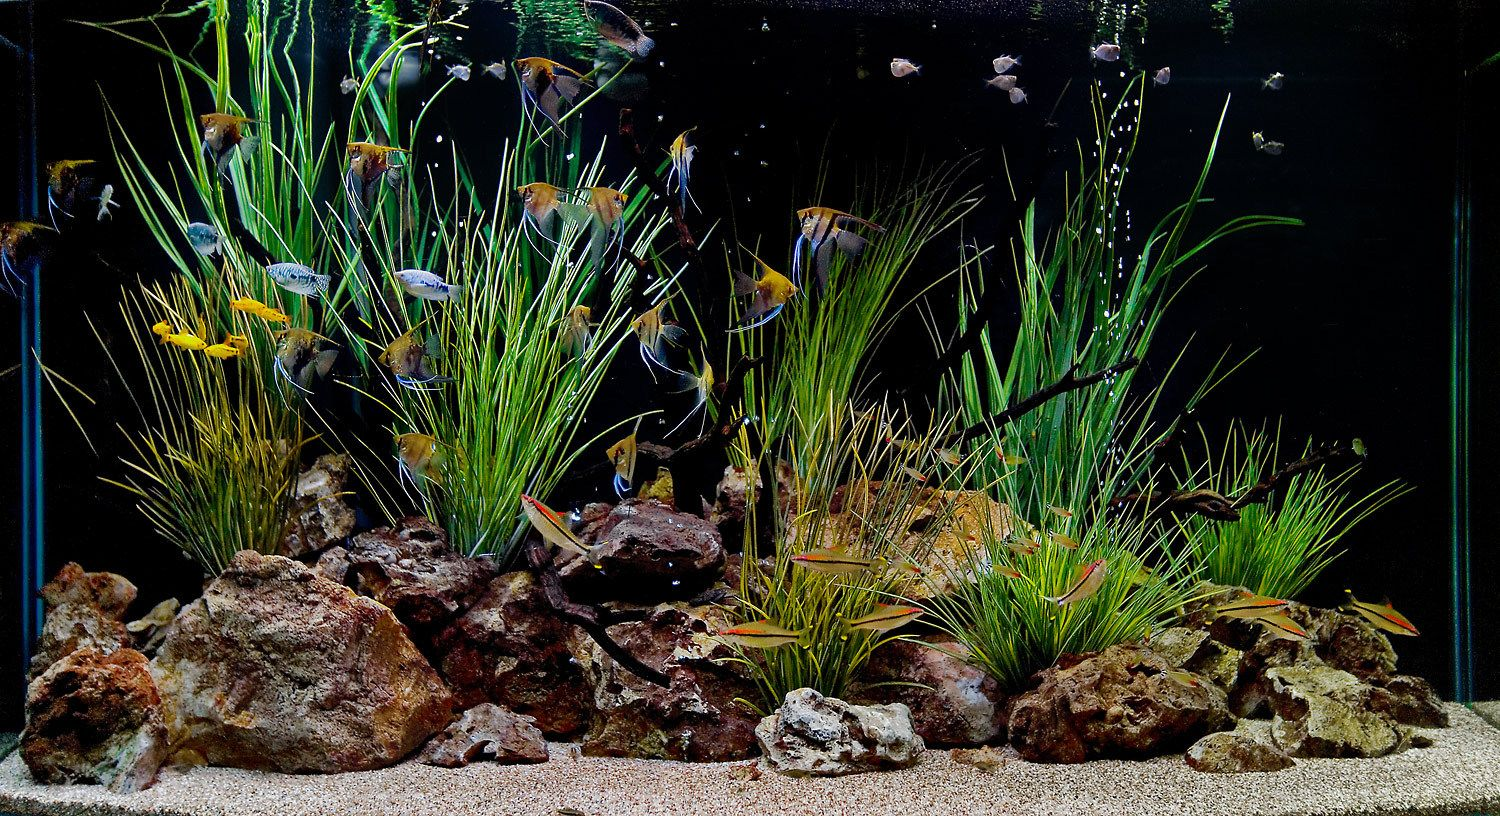 Freshwater Aquarium Design Ideas | Aquarium Design Group custom ...